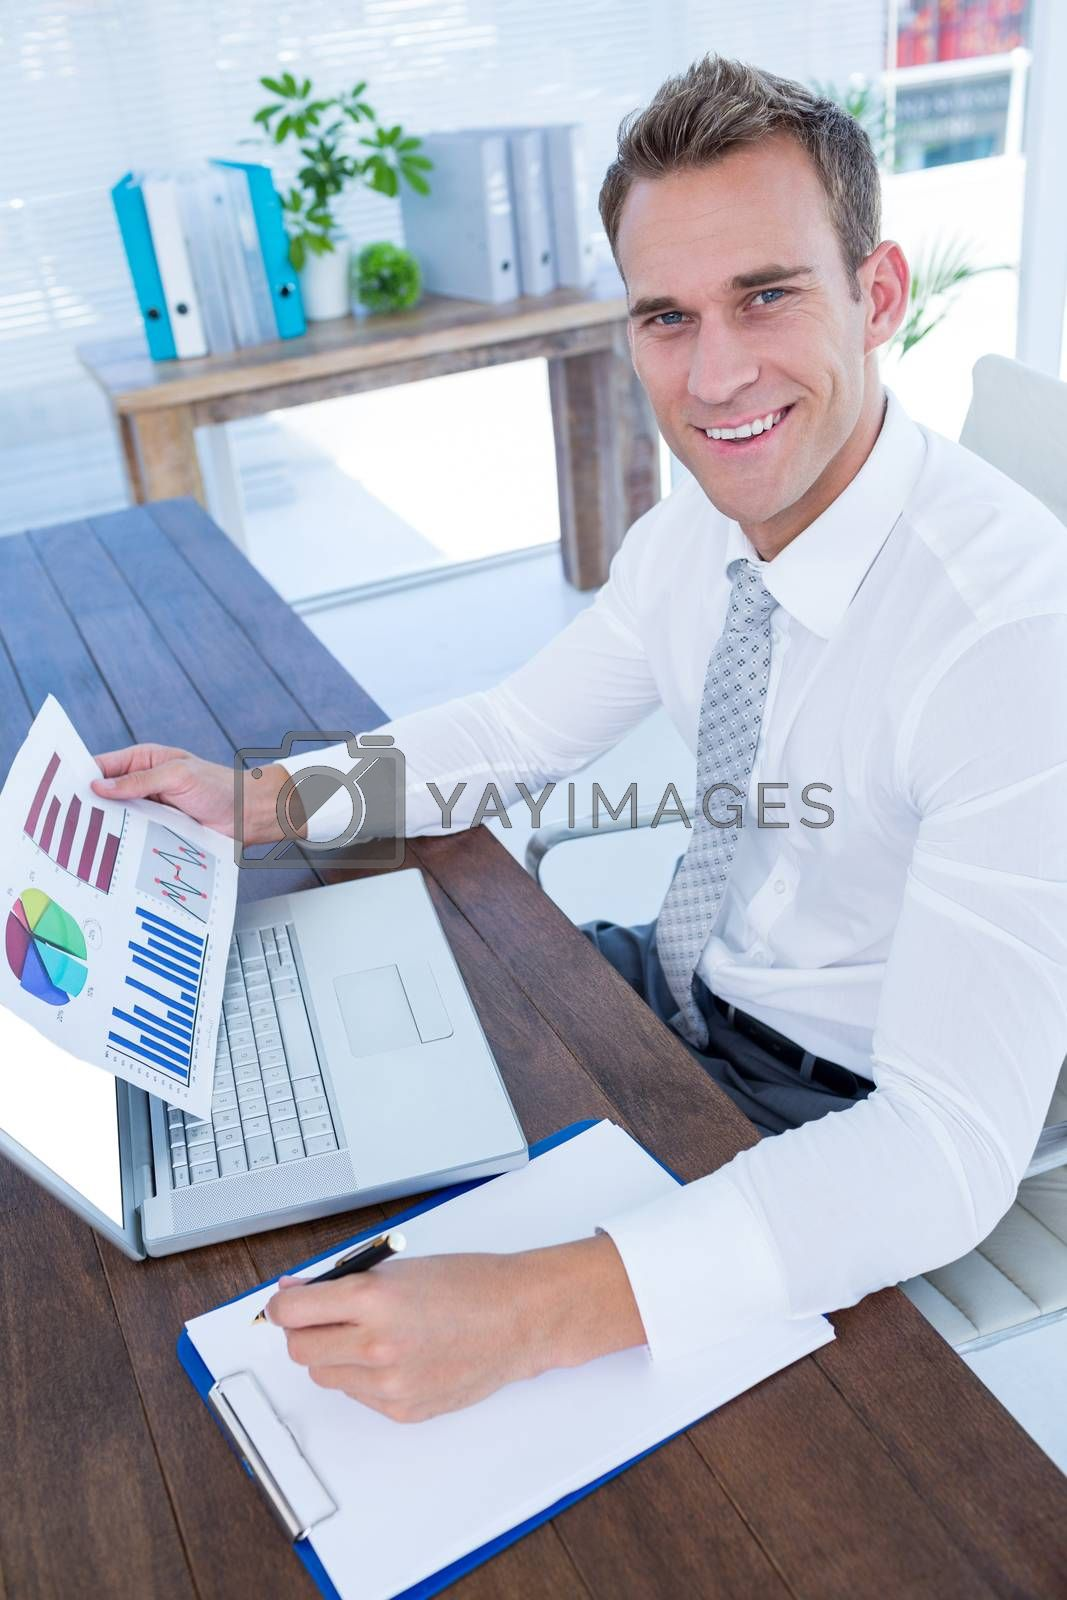 Royalty free image of Smiling businessman working with flow charts by Wavebreakmedia